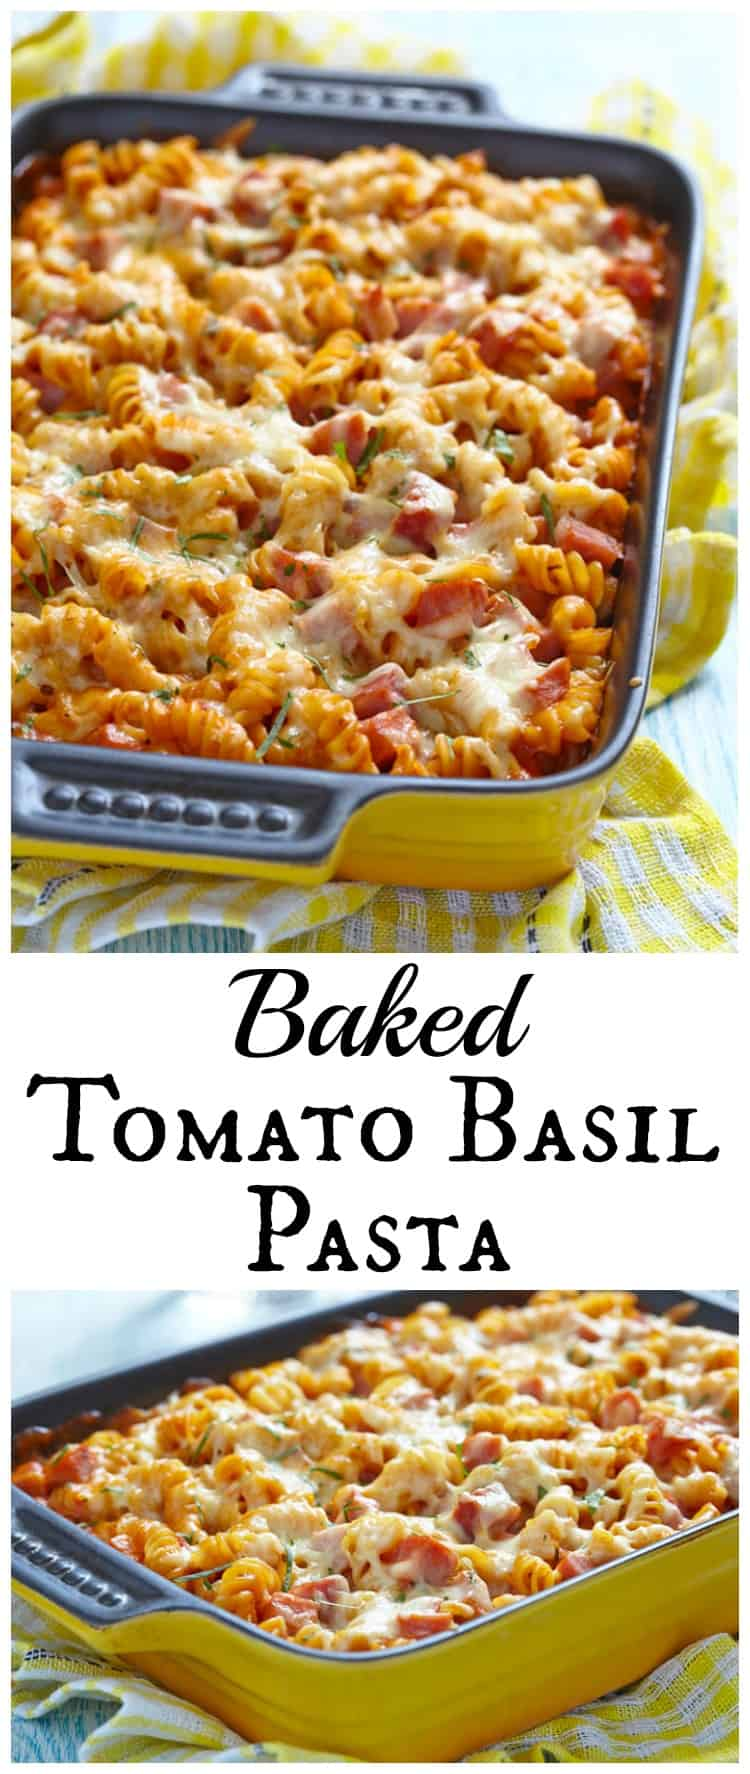 This tomato basil baked pasta recipe is one everyone in your family will love! Creamy, cheesy, and with all the traditional flavors under 30 minutes.